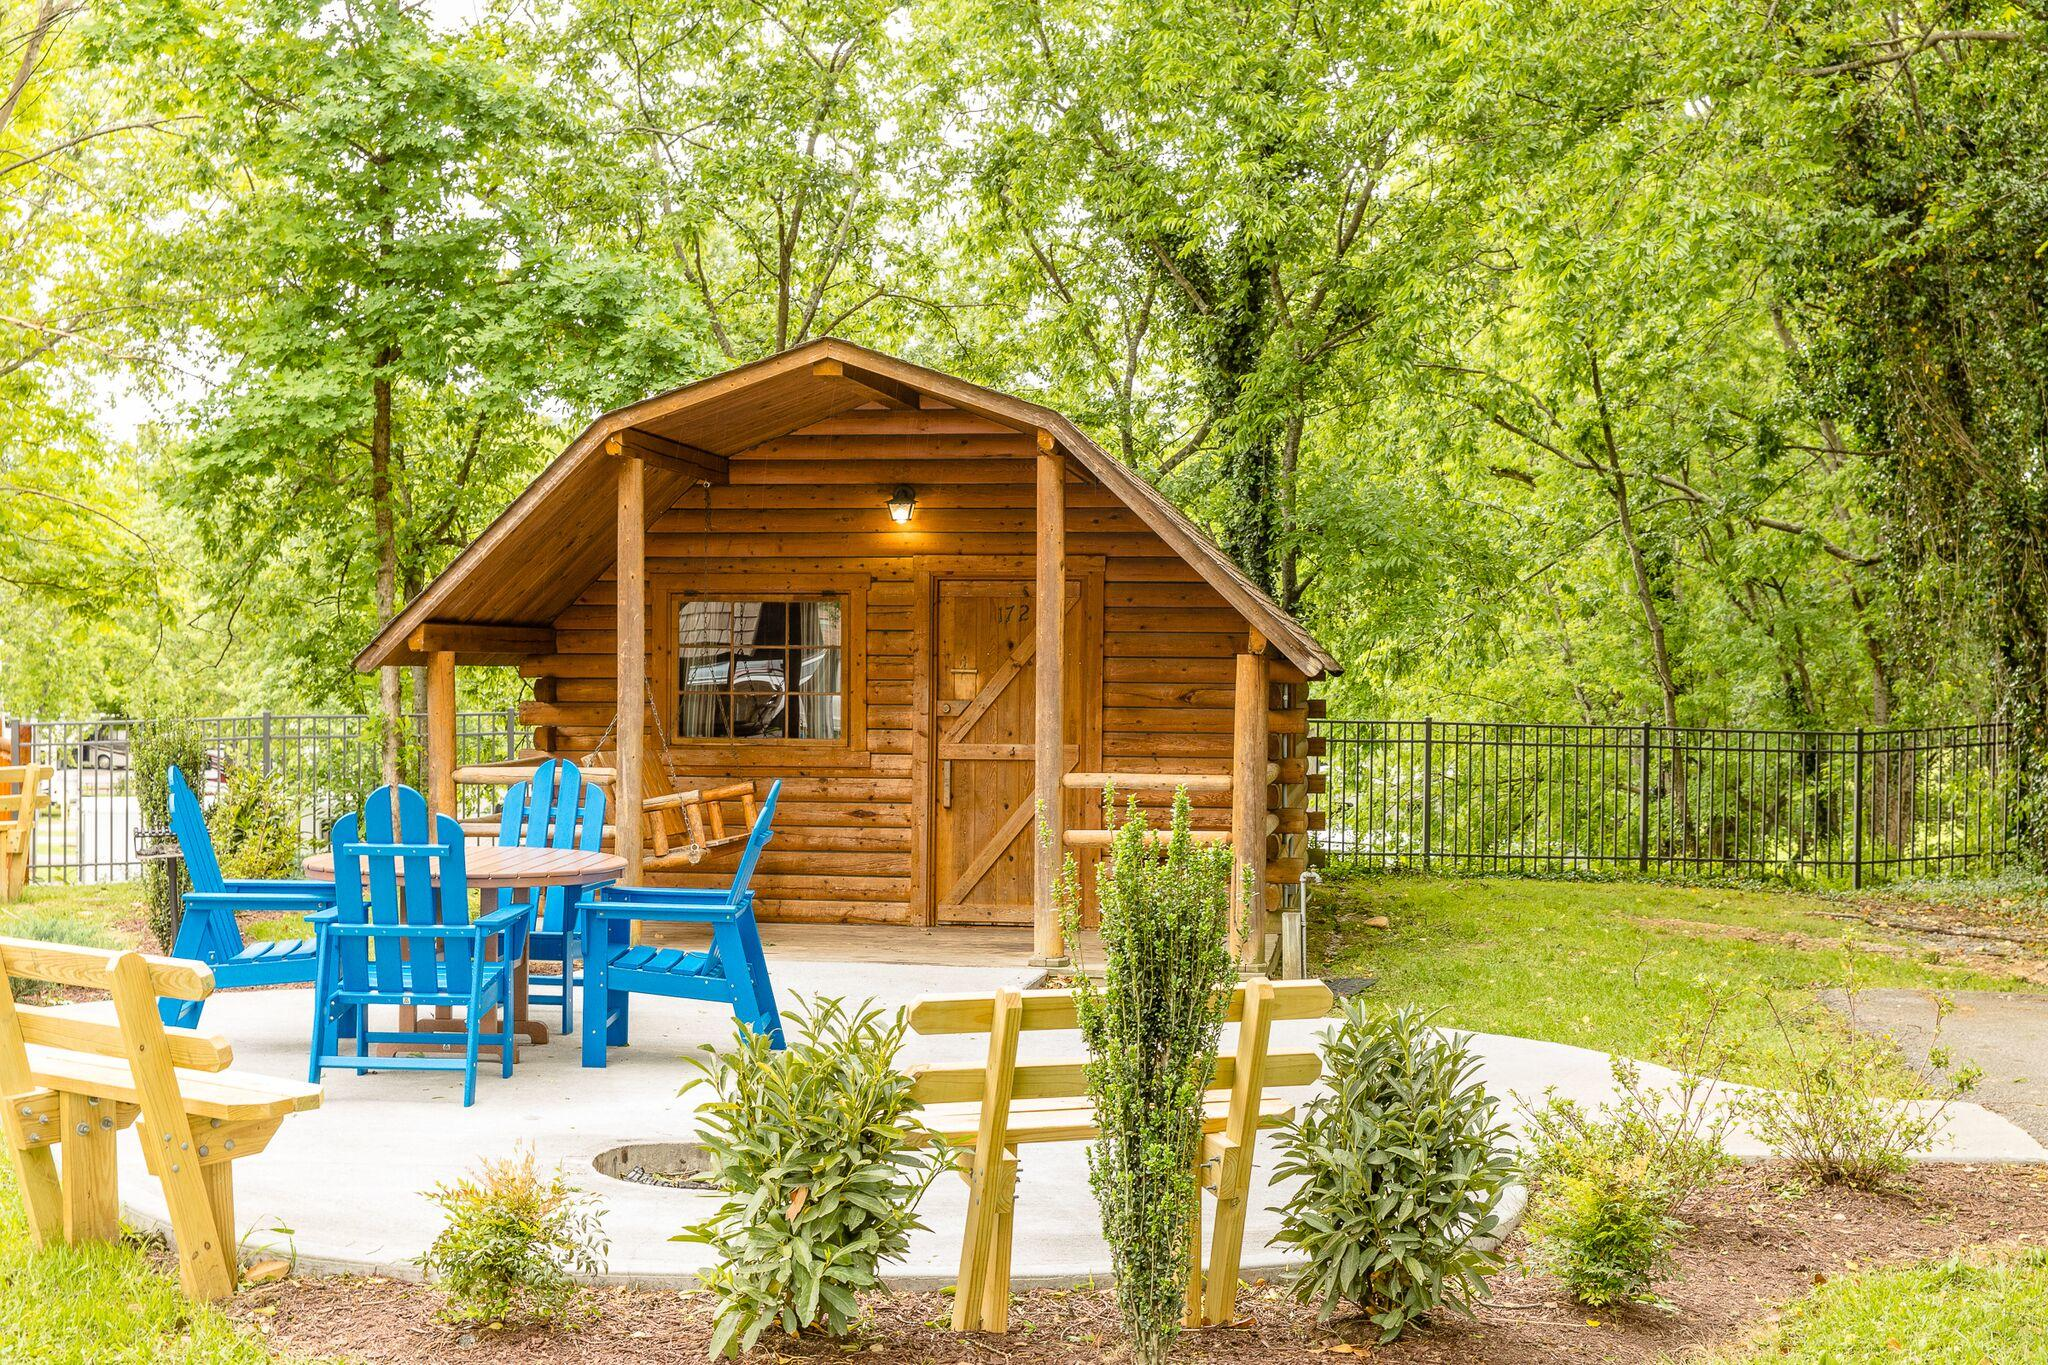 Pigeon forge gatlinburg koa holiday coupons near me in for Pigeon forge cabin coupons